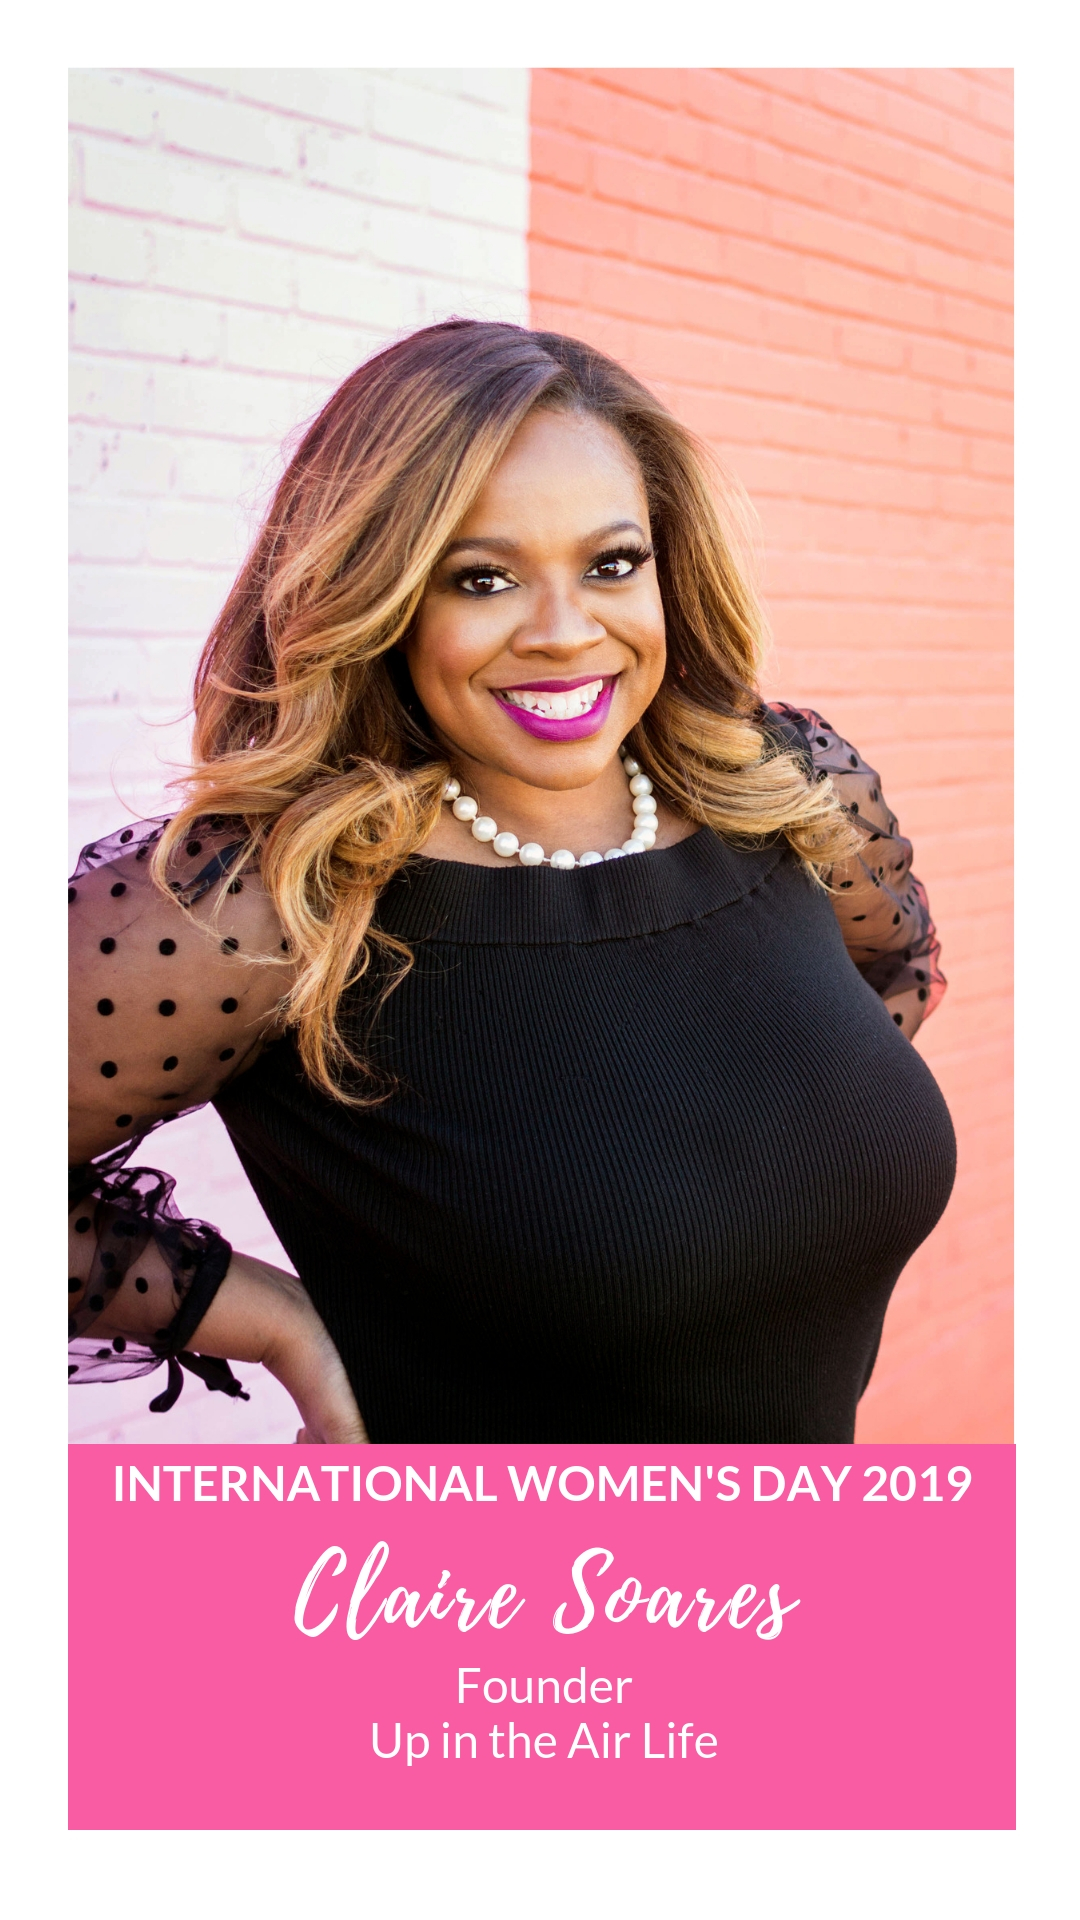 International Women's Day - Claire Soares